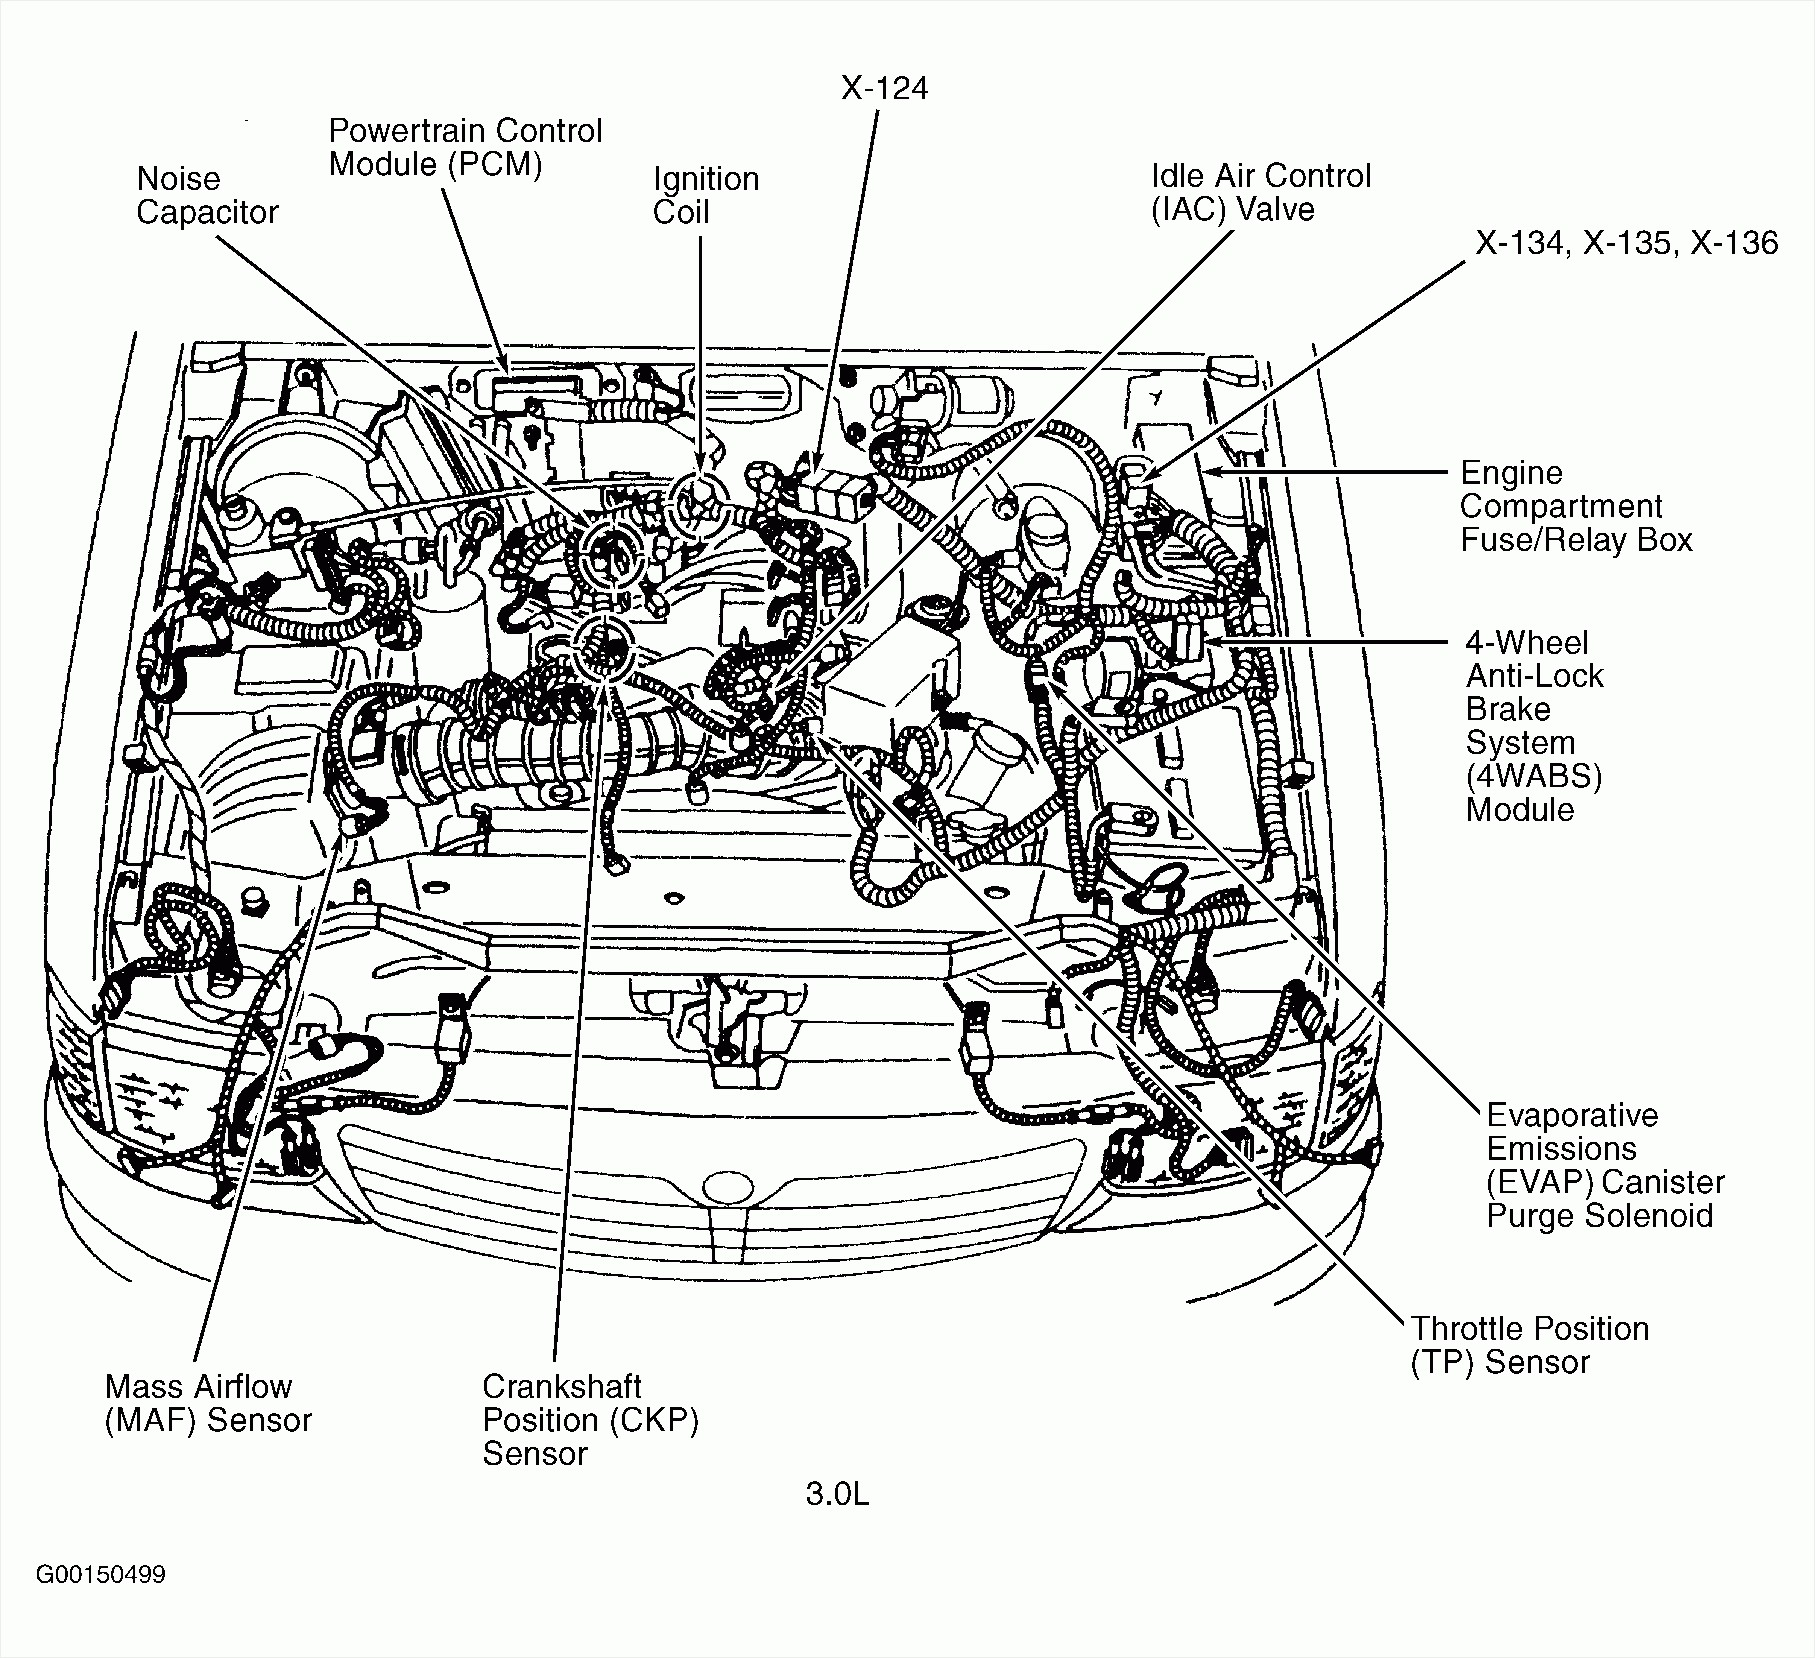 hight resolution of 1999 beetle engine diagram wiring diagram operations 2000 vw cabrio engine diagram